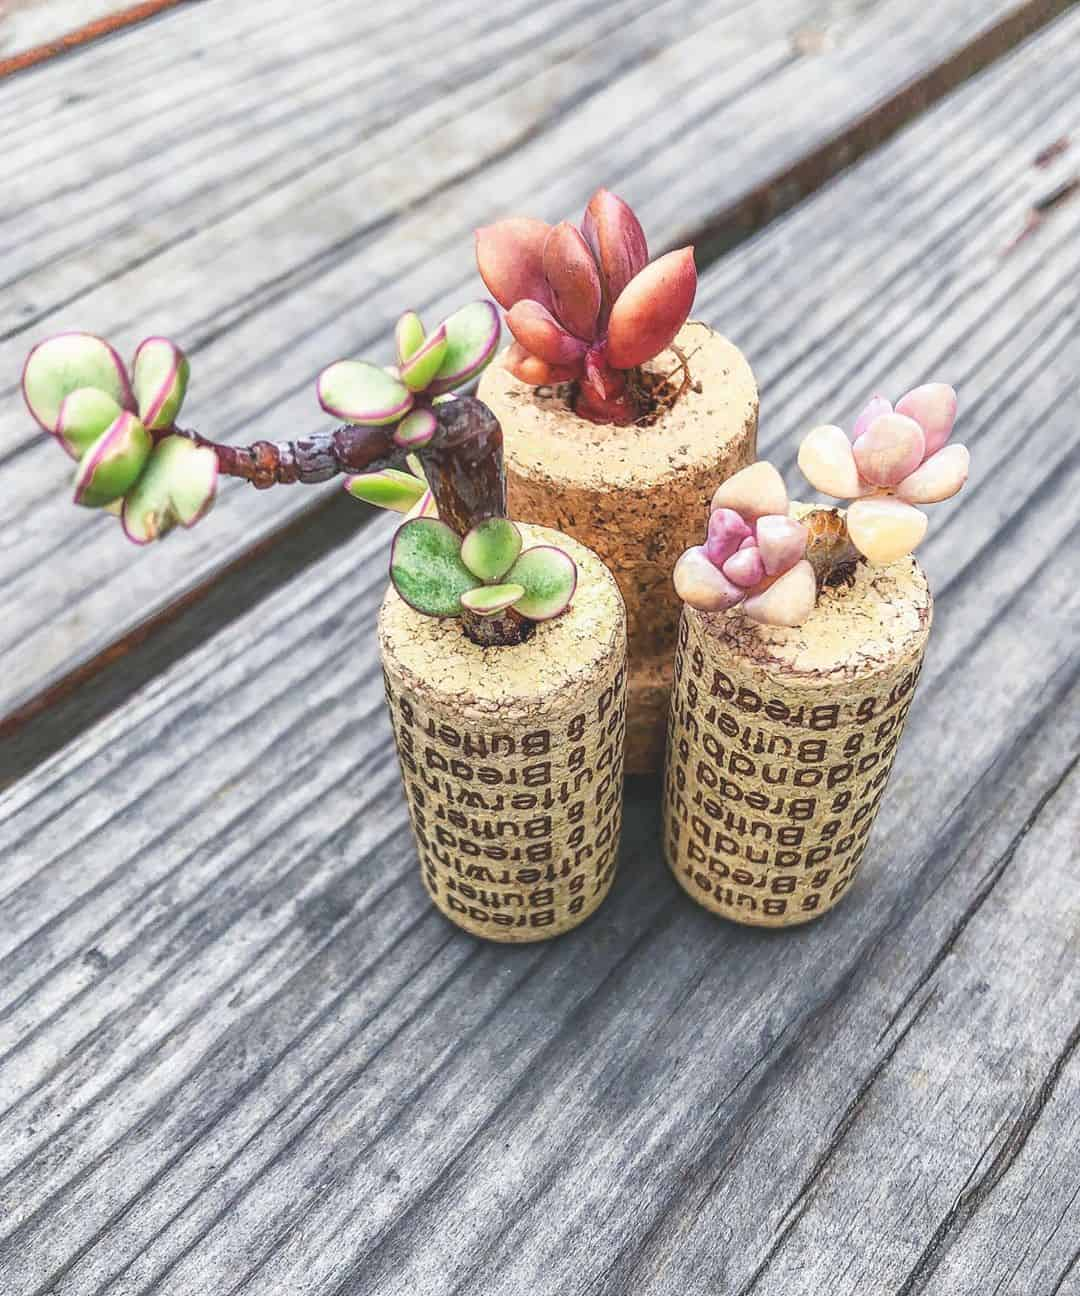 24 Decorative and Useful Wine Cork Crafts Ideas